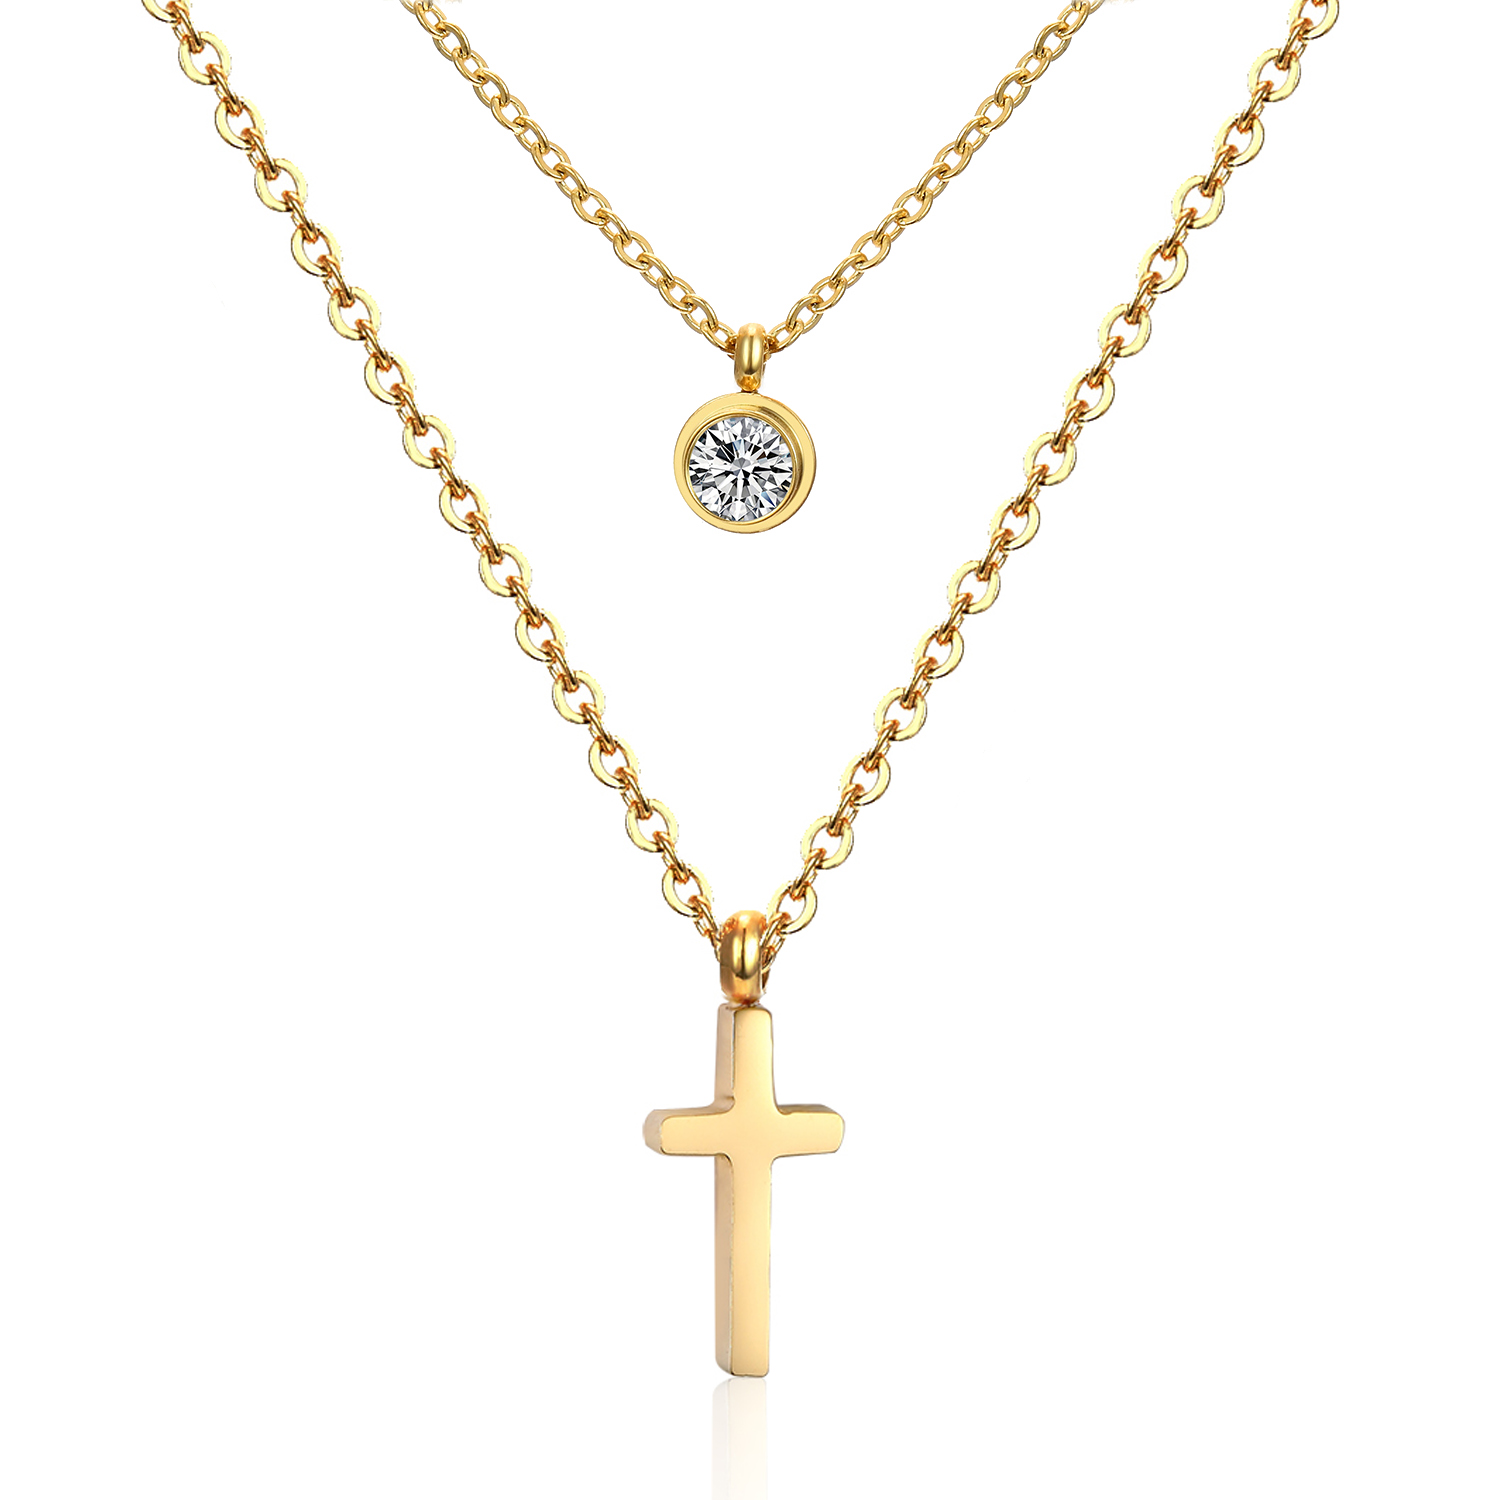 Hot 18K Gold Plated Double Necklace 316L Stainless Steel Chain Double Necklace With Cross Pendant and CZ Diamond(China (Mainland))